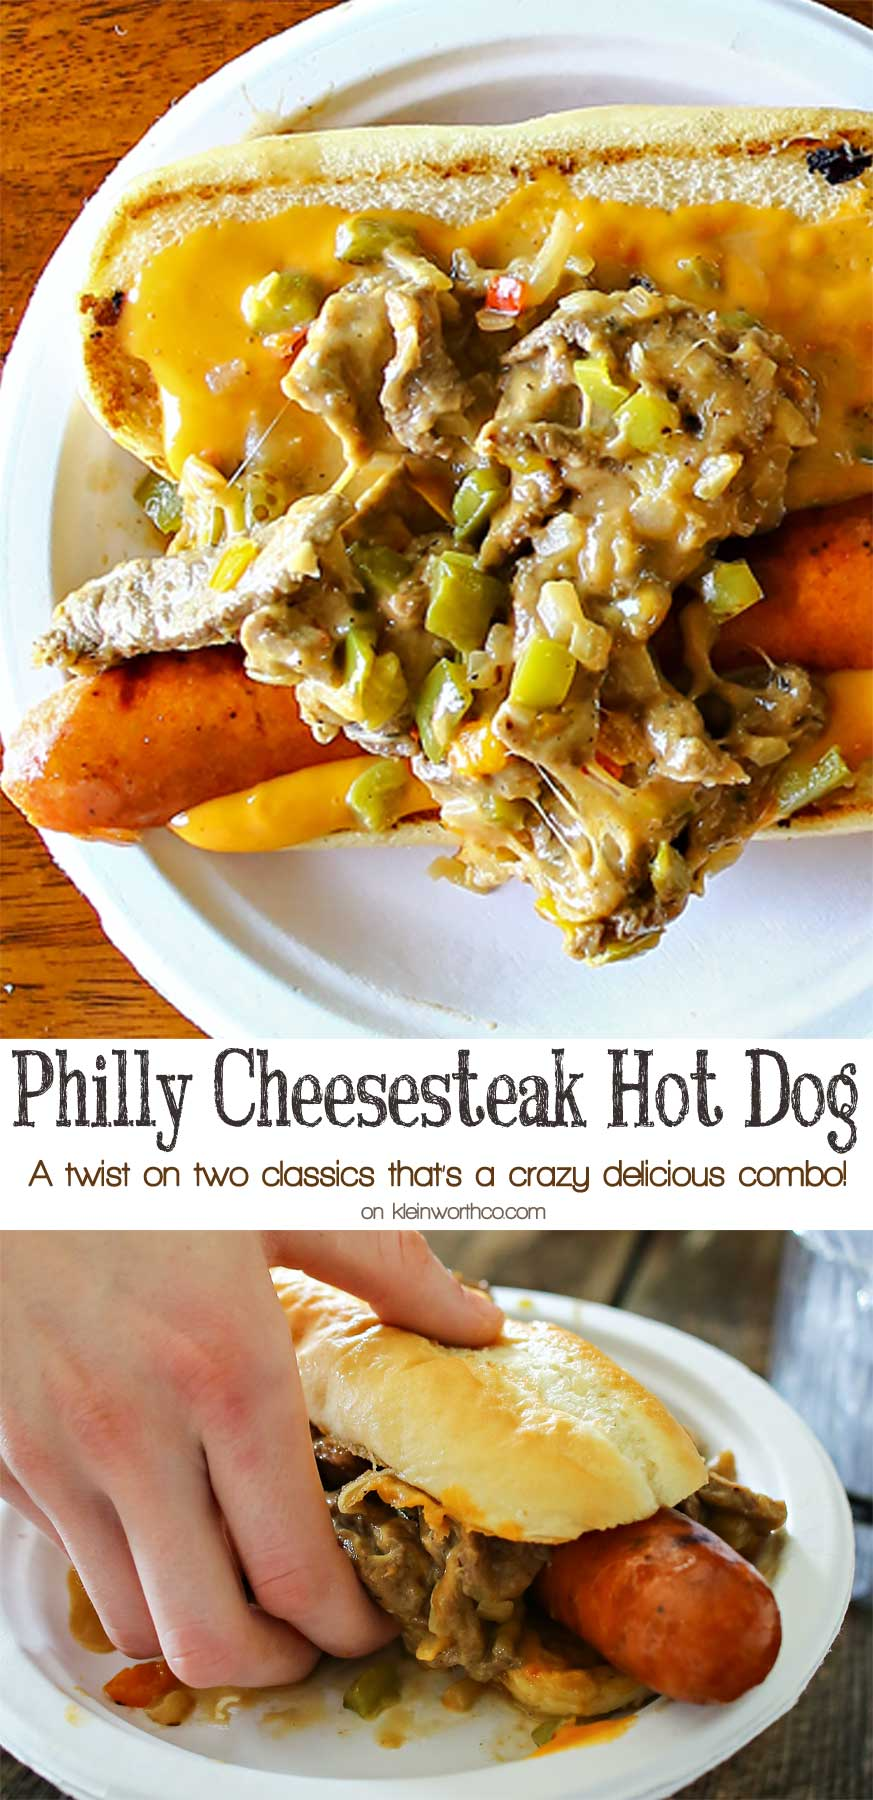 Philly Cheesesteak Hot Dog is a twist on two iconic food recipes. Combining grilled hot dogs & the best philly cheesesteak recipe is over the top amazing!